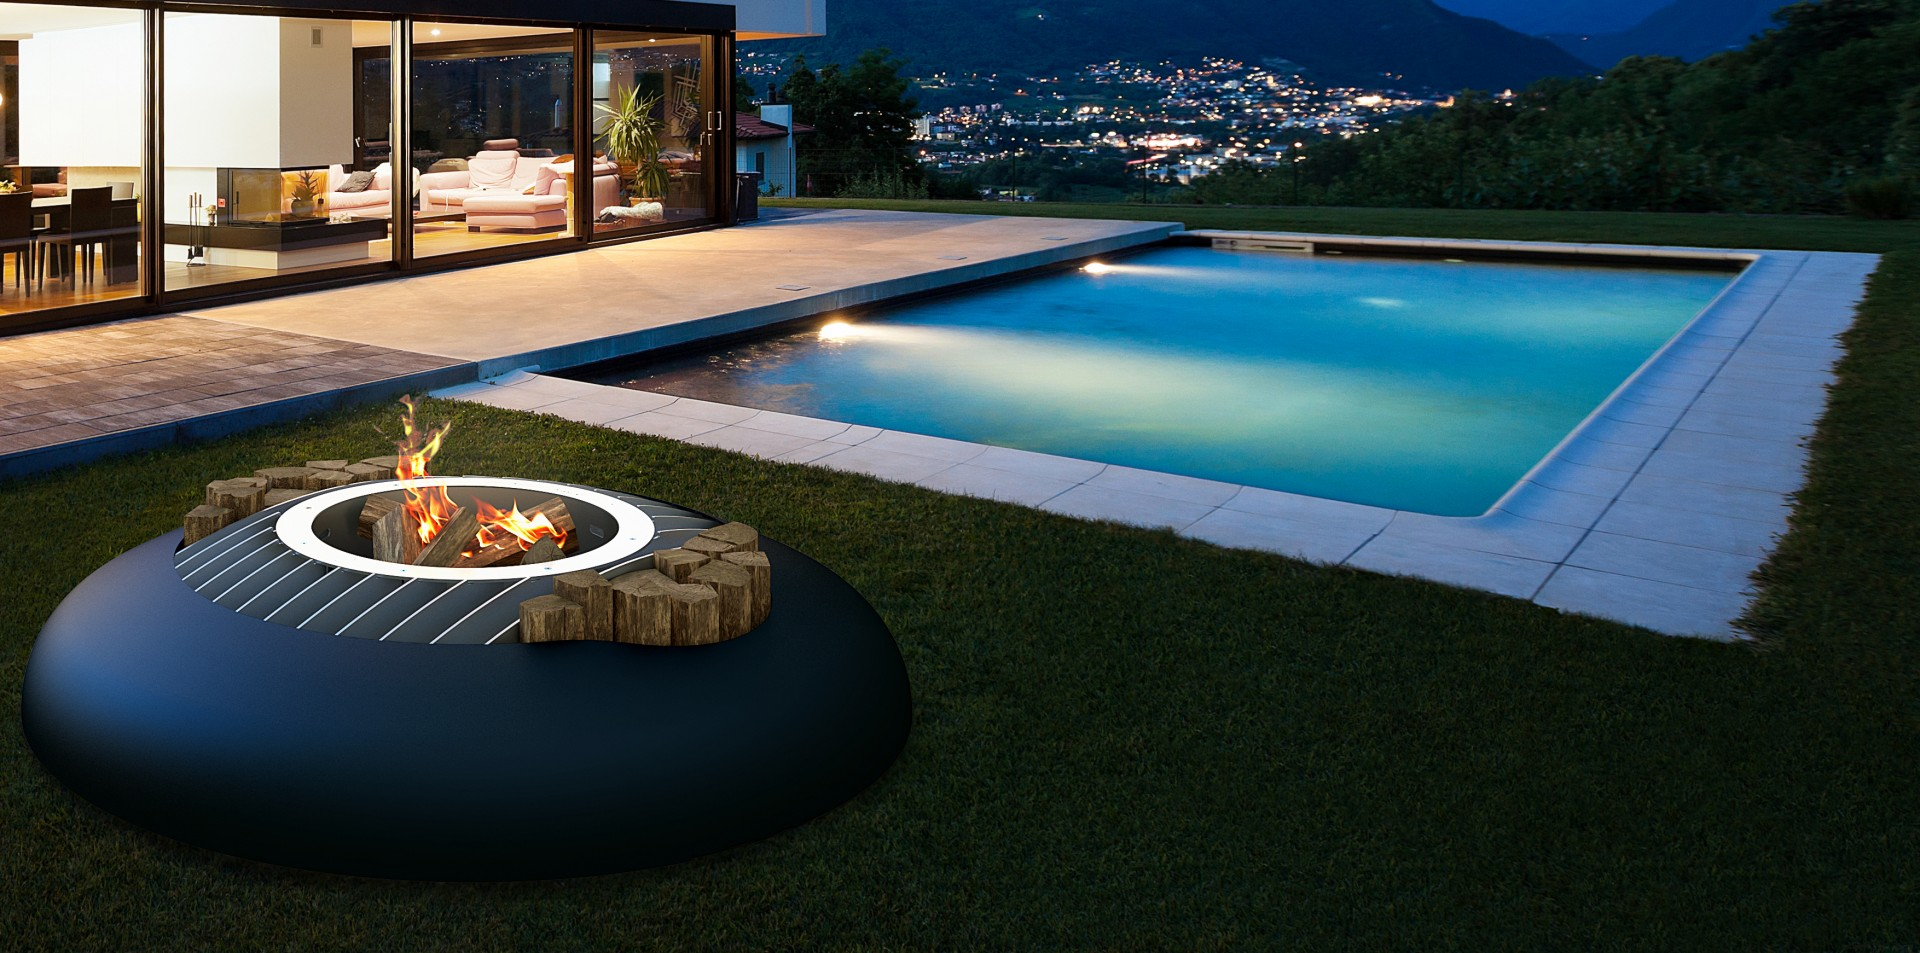 Firepits & Barbecues